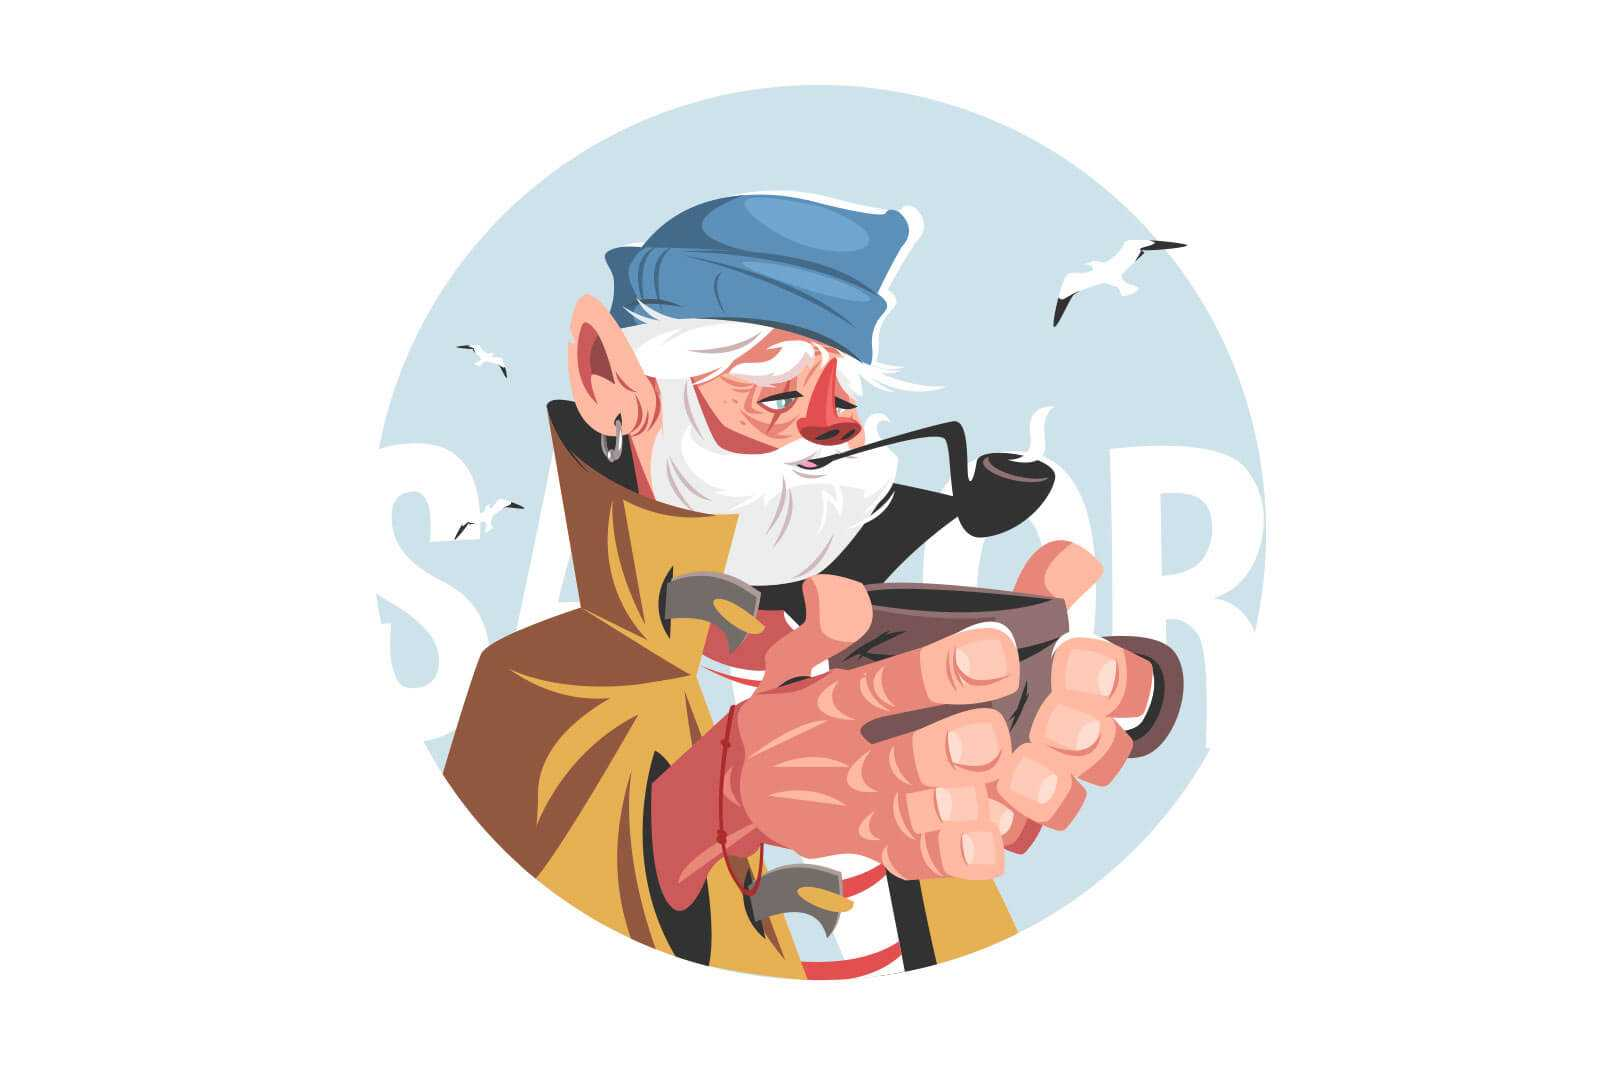 Fisherman with hot drink vector illustration. Old man in hat smoking pipe flat style. Seagulls frying around. Ageing and hobby concept. Isolated on white background